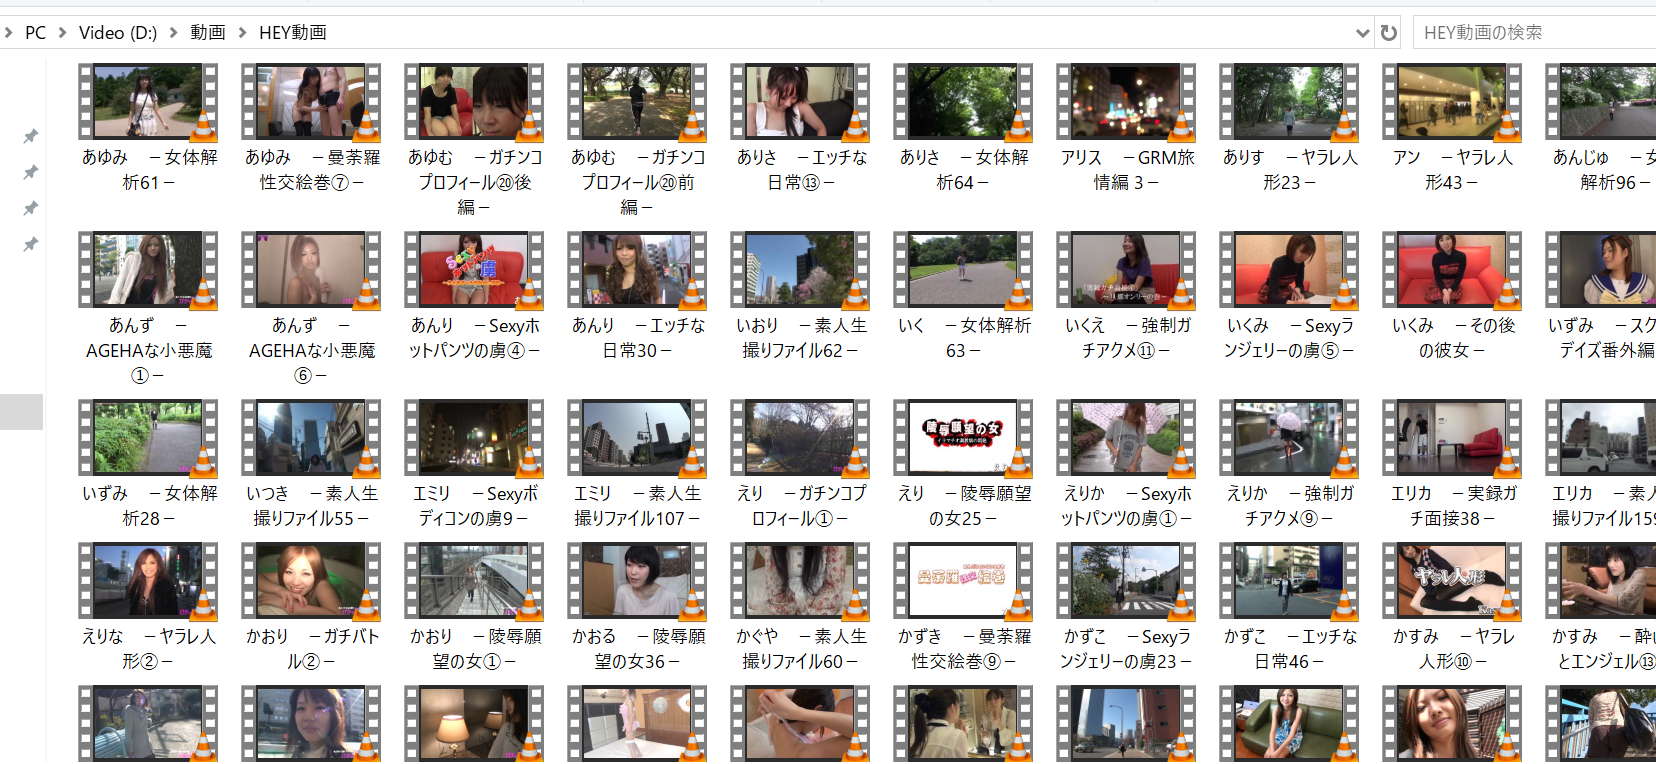 uncensored JAV erotic videos I actually purchased from the HEYdouga